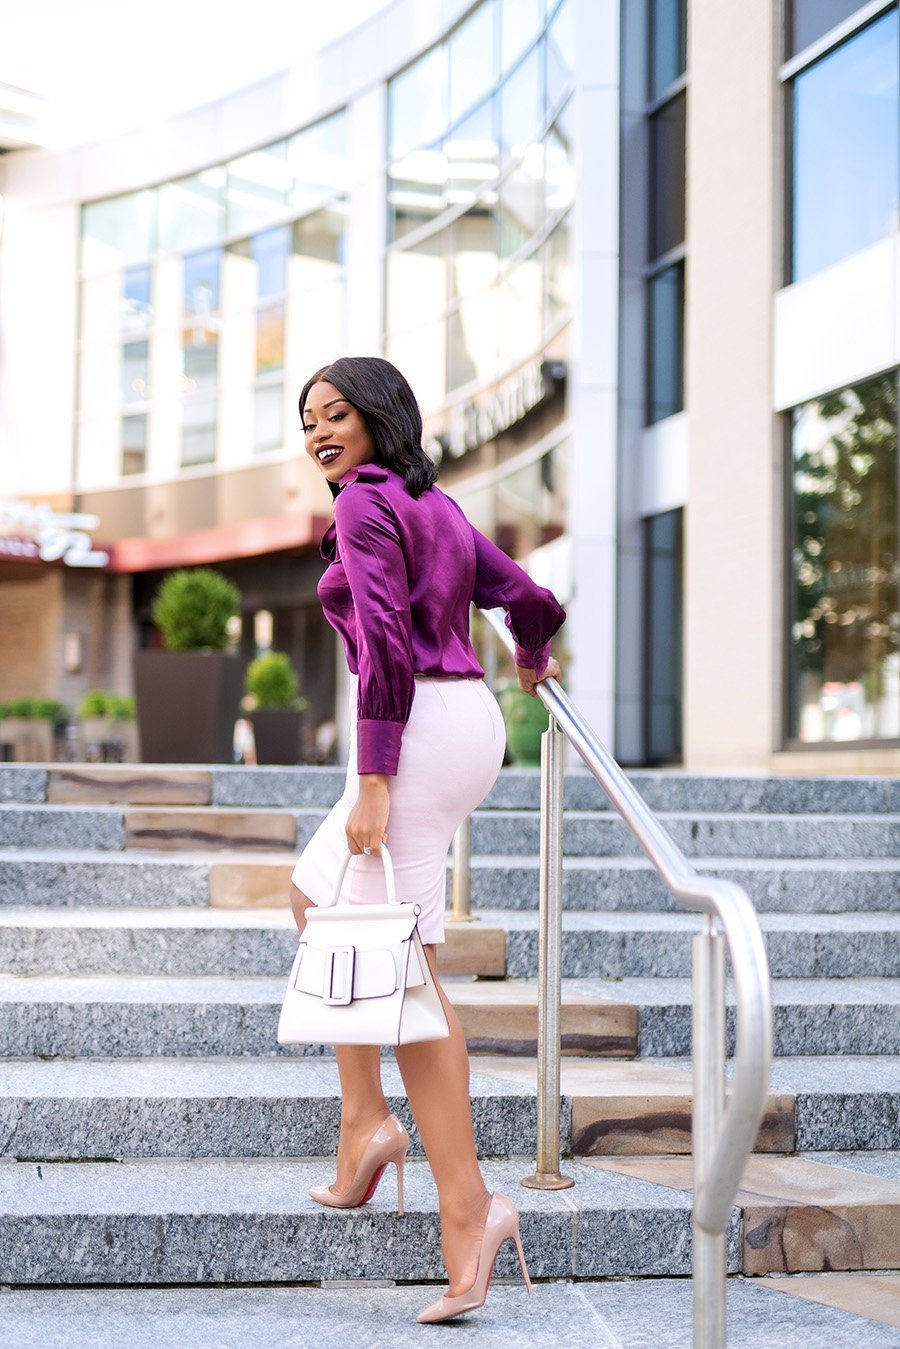 Fashion-blogger-Stella-Eneanya-Adewunmi-of-Jadore-Fashion-shares-her-fall-work-style